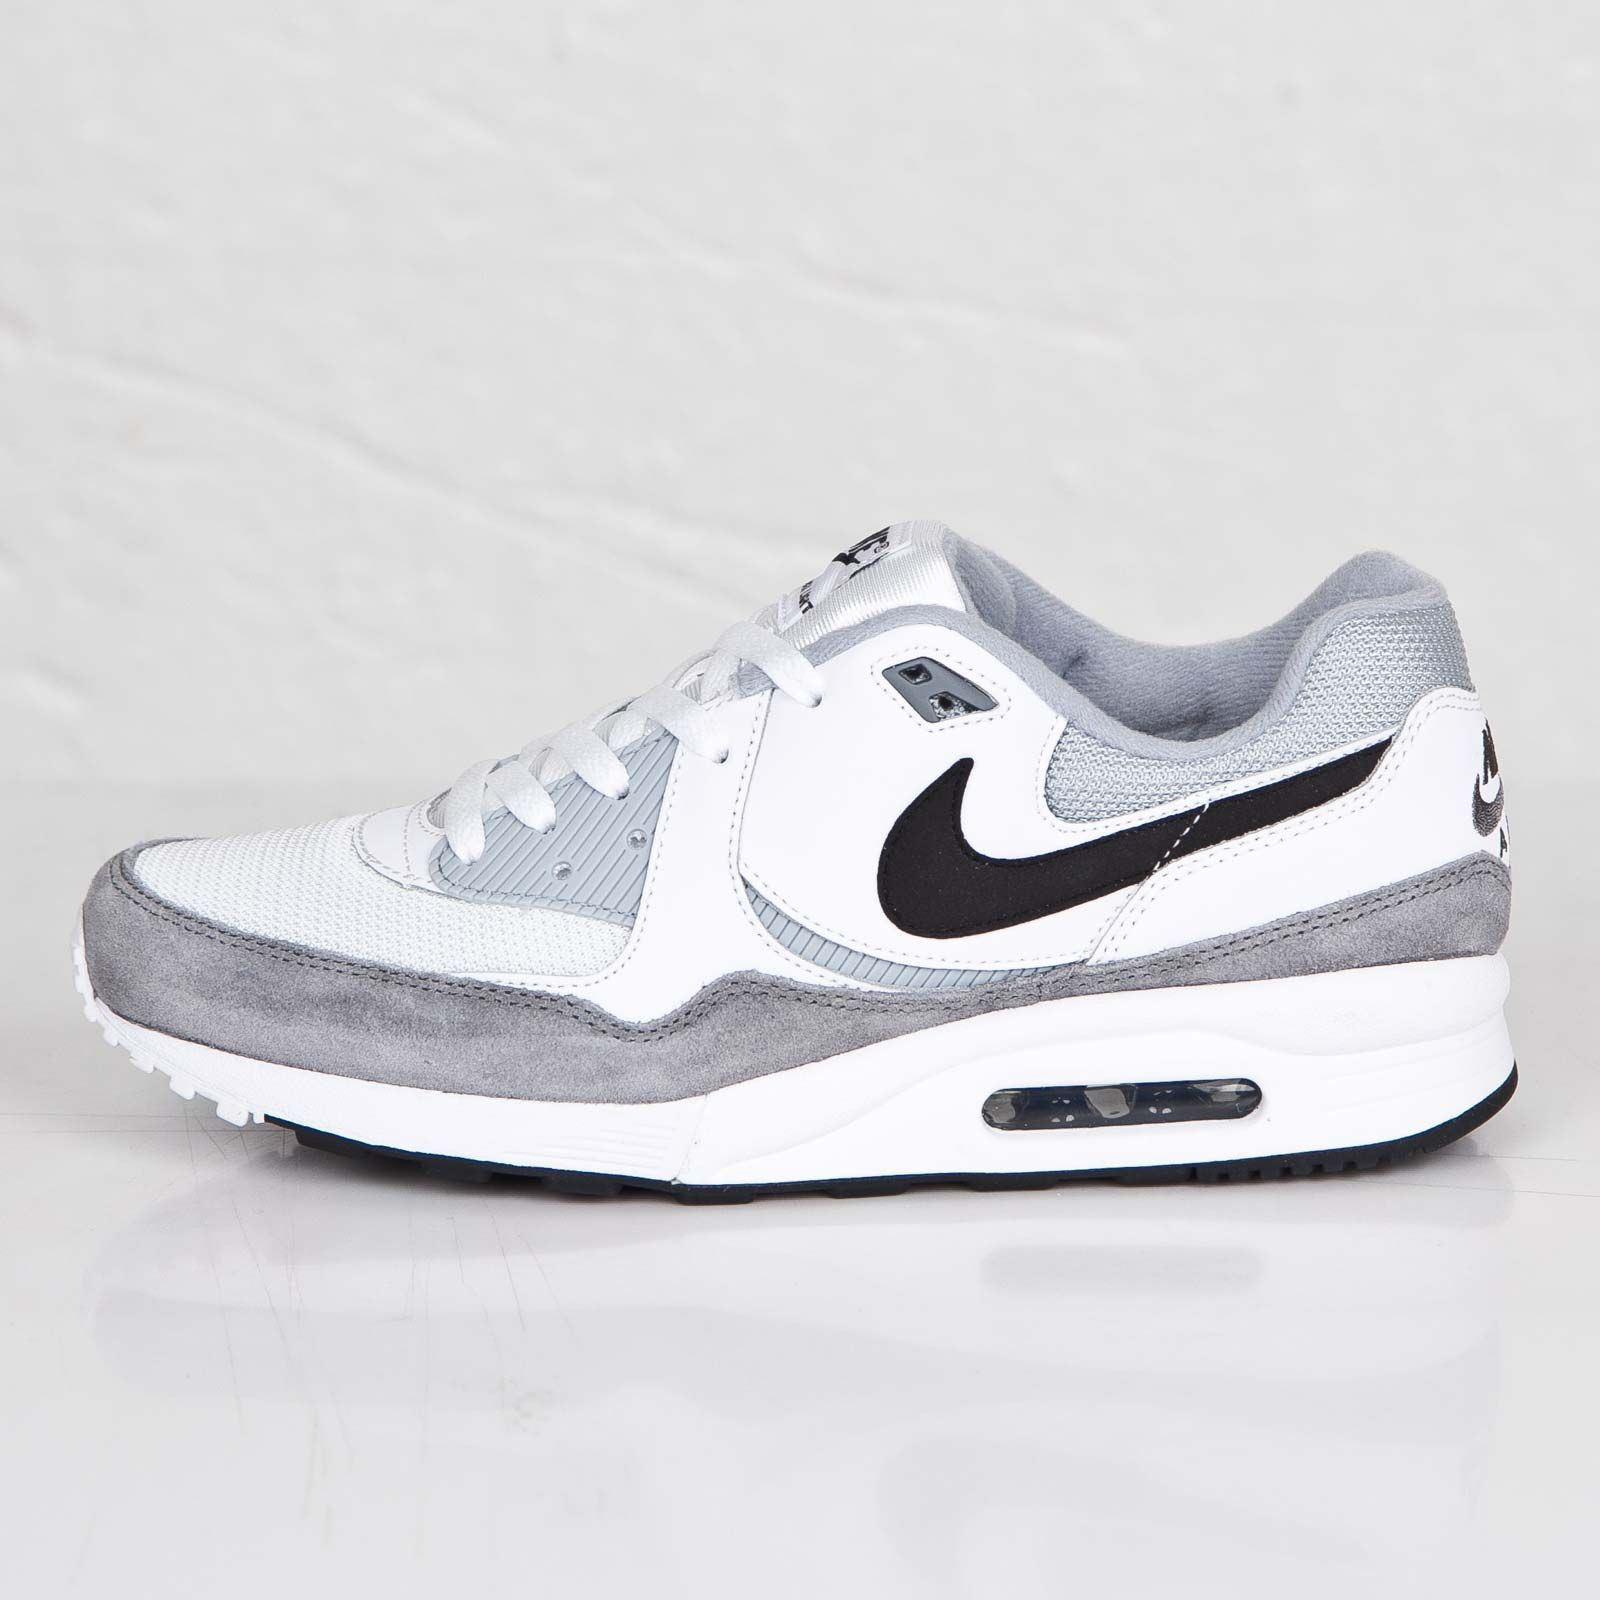 competitive price 3118a 91b9d Nike - Air Max Light Essential - 631722-110 - Sneakersnstuff, sneakers   streetwear  online since 1999